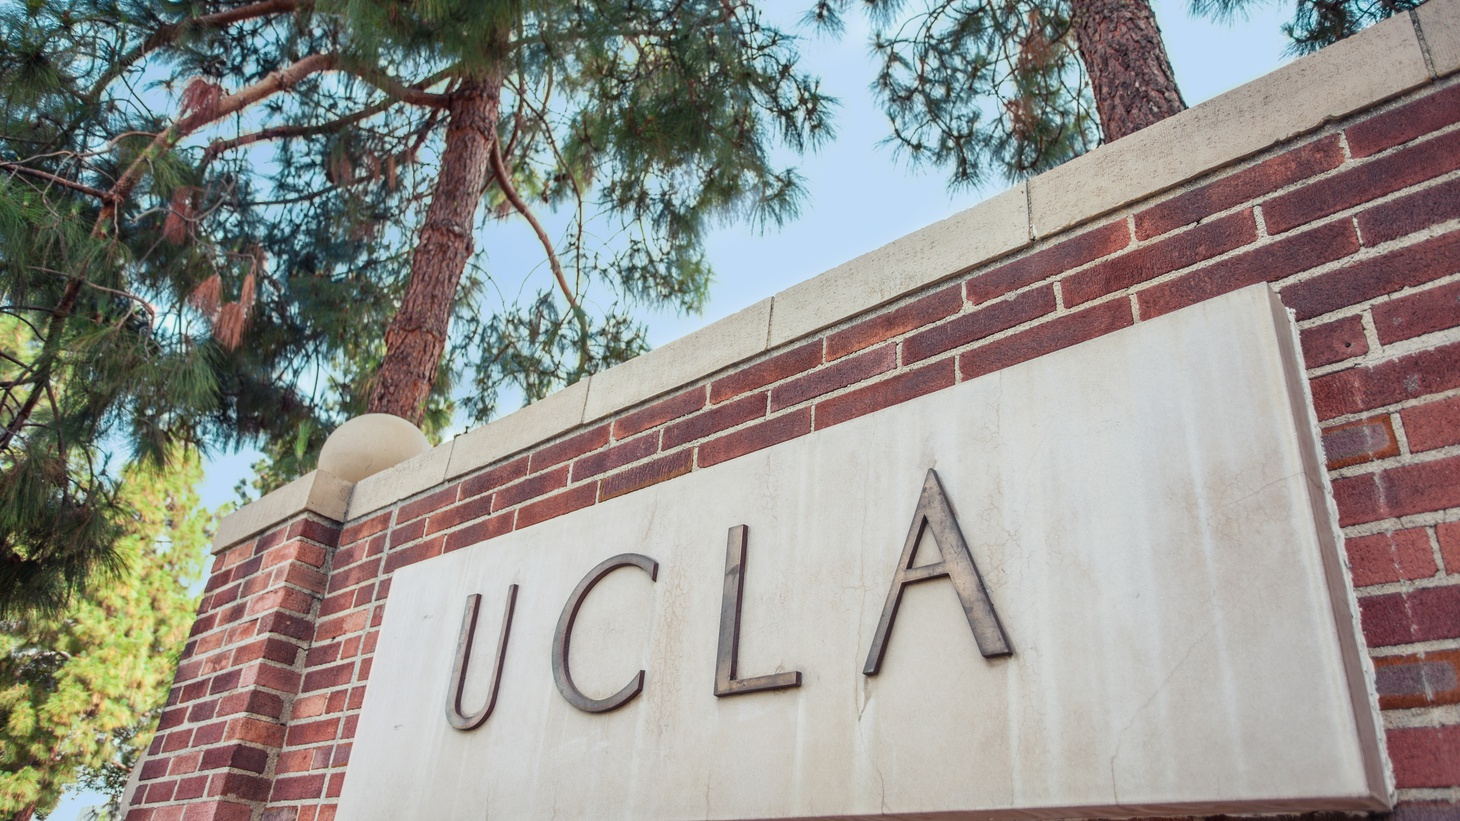 """A group of UCLA faculty is rushing to raise funds to bring their academic colleagues from Afghanistan to the U.S. — away from the Taliban regime. """"Some of the colleagues have been harassed, some are expelled, and others have been receiving death threats from the Taliban,"""" laments Professor Ali Behdad."""